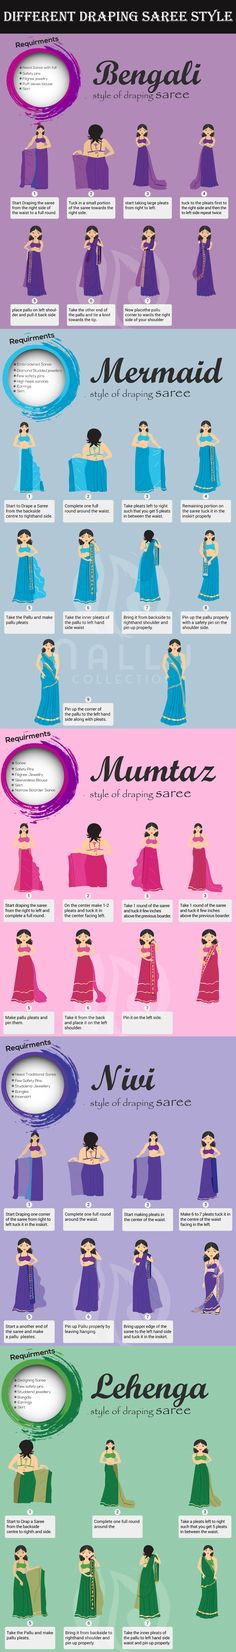 Fashion infographic & data visualisation 11 Casual Ways to drape a Saree Infographic Description Infographics of Different Saree Draping Styles – Infographic Source – Drape Sarees, Saree Draping Styles, Saree Styles, Blouse Styles, Indian Attire, Indian Wear, Indian Dresses, Indian Outfits, Indian Style Clothes